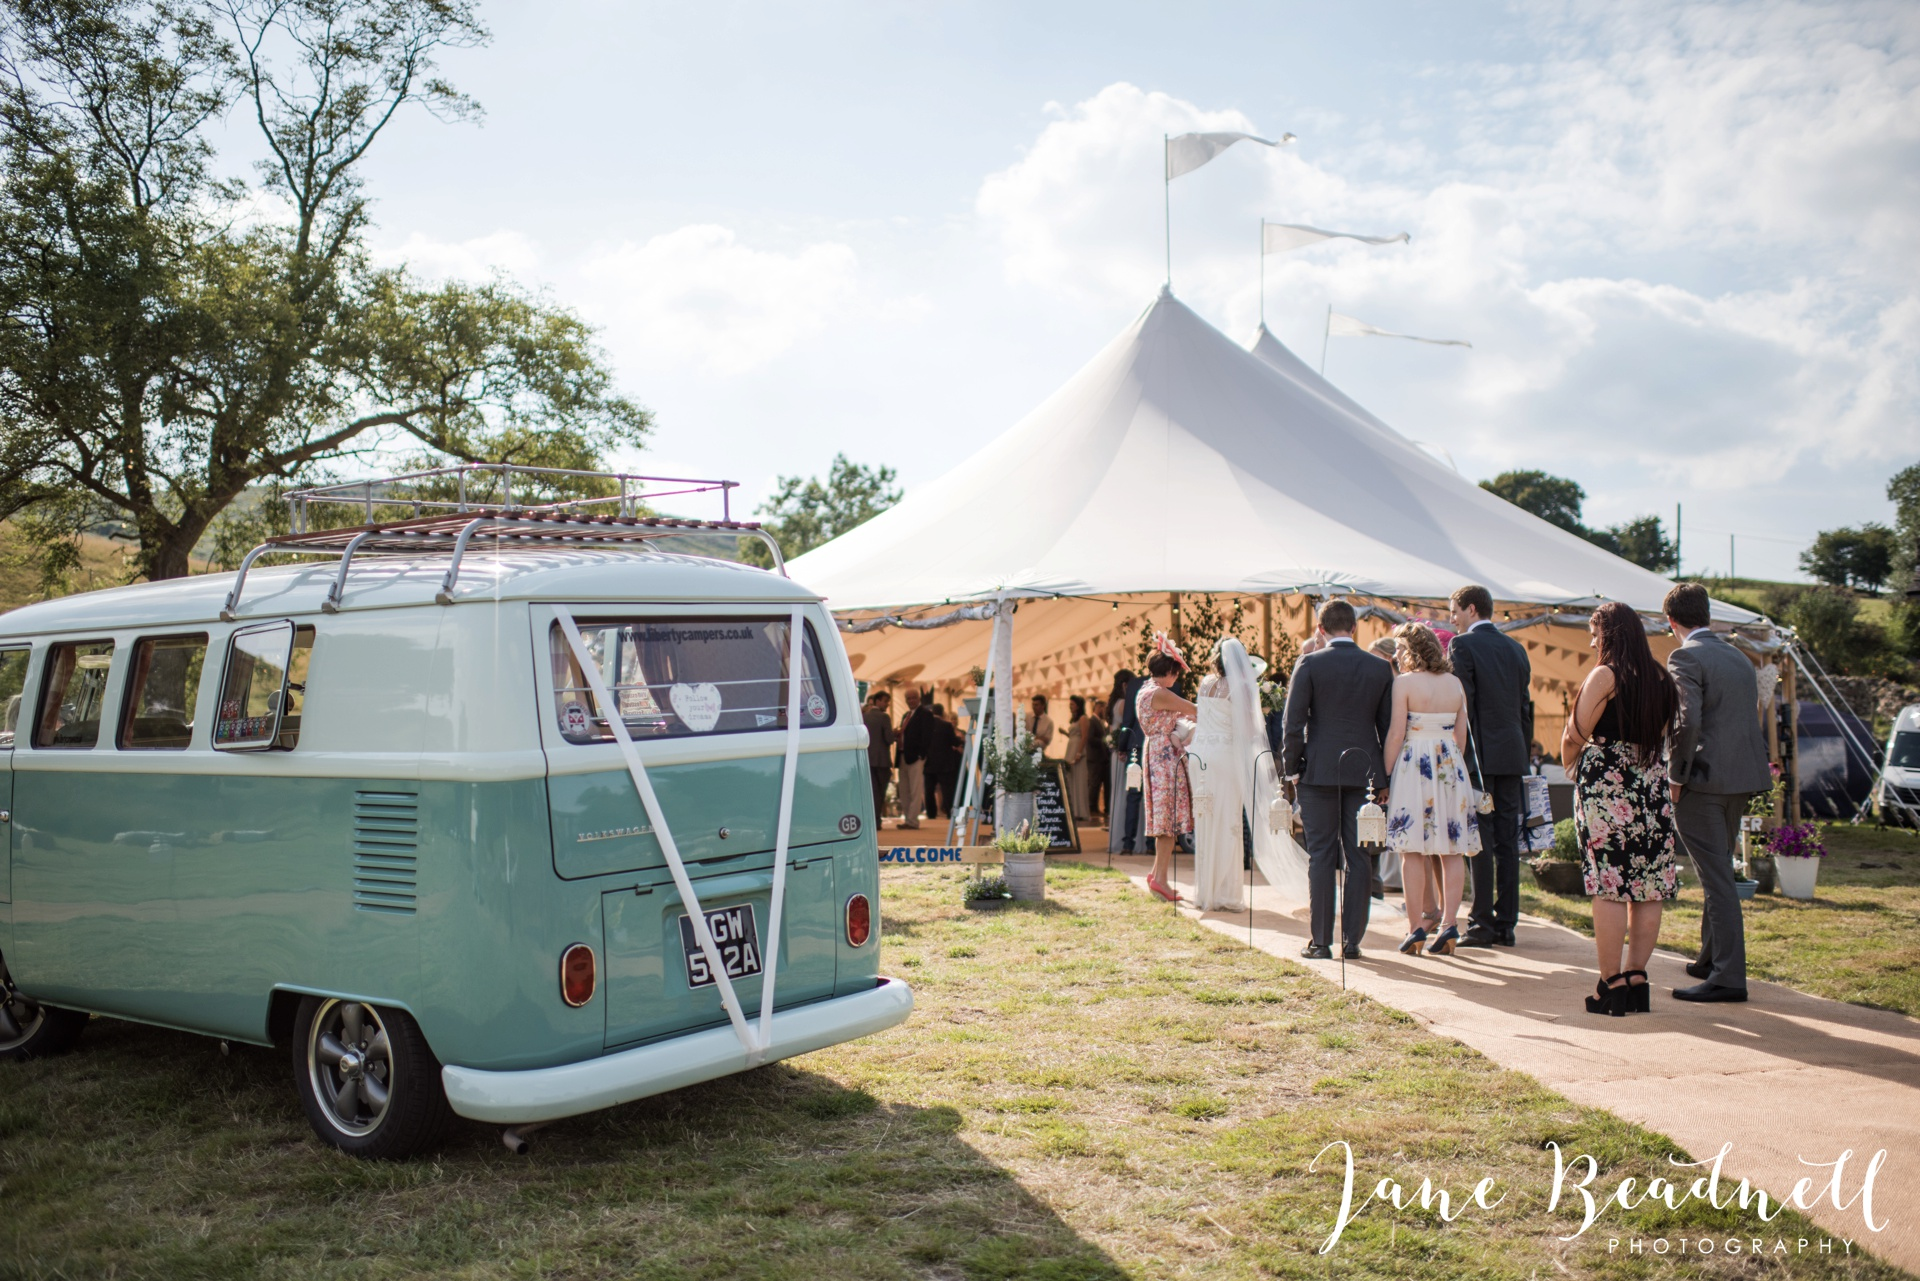 Jane Beadnell fine art wedding photographer Leeds_0074